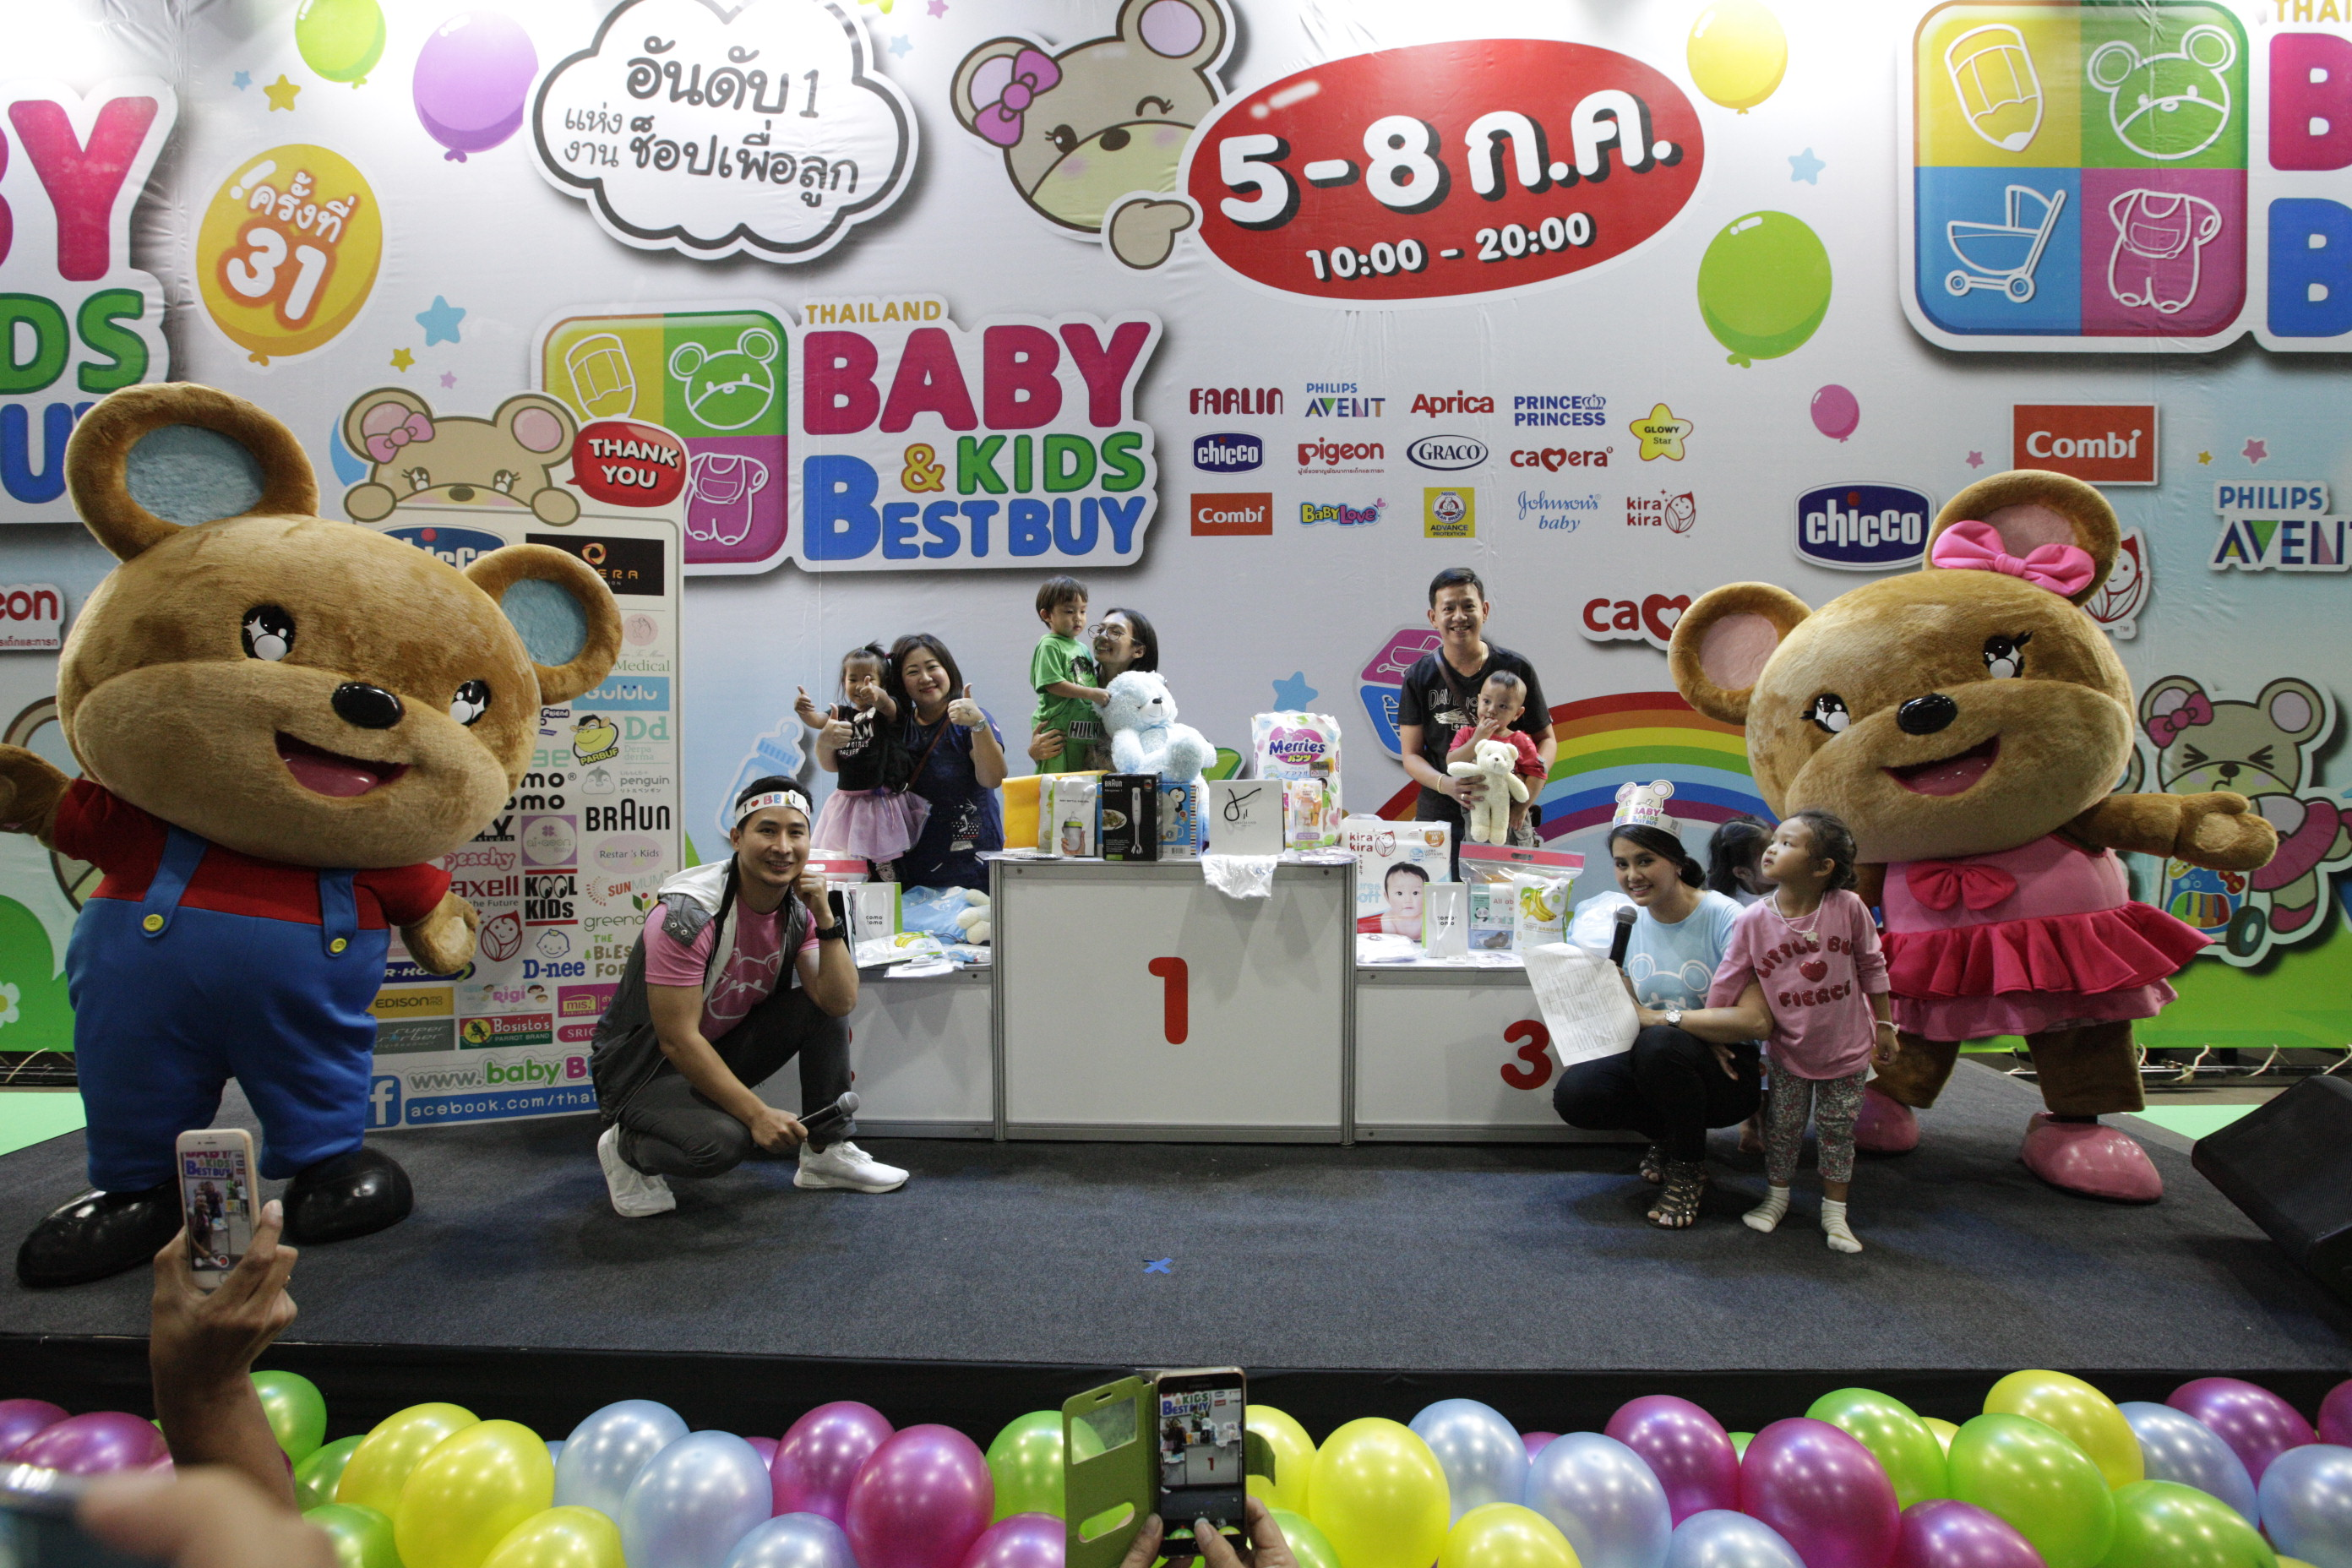 Thailand Baby & Kids Best Buy ครั้งที่ 31